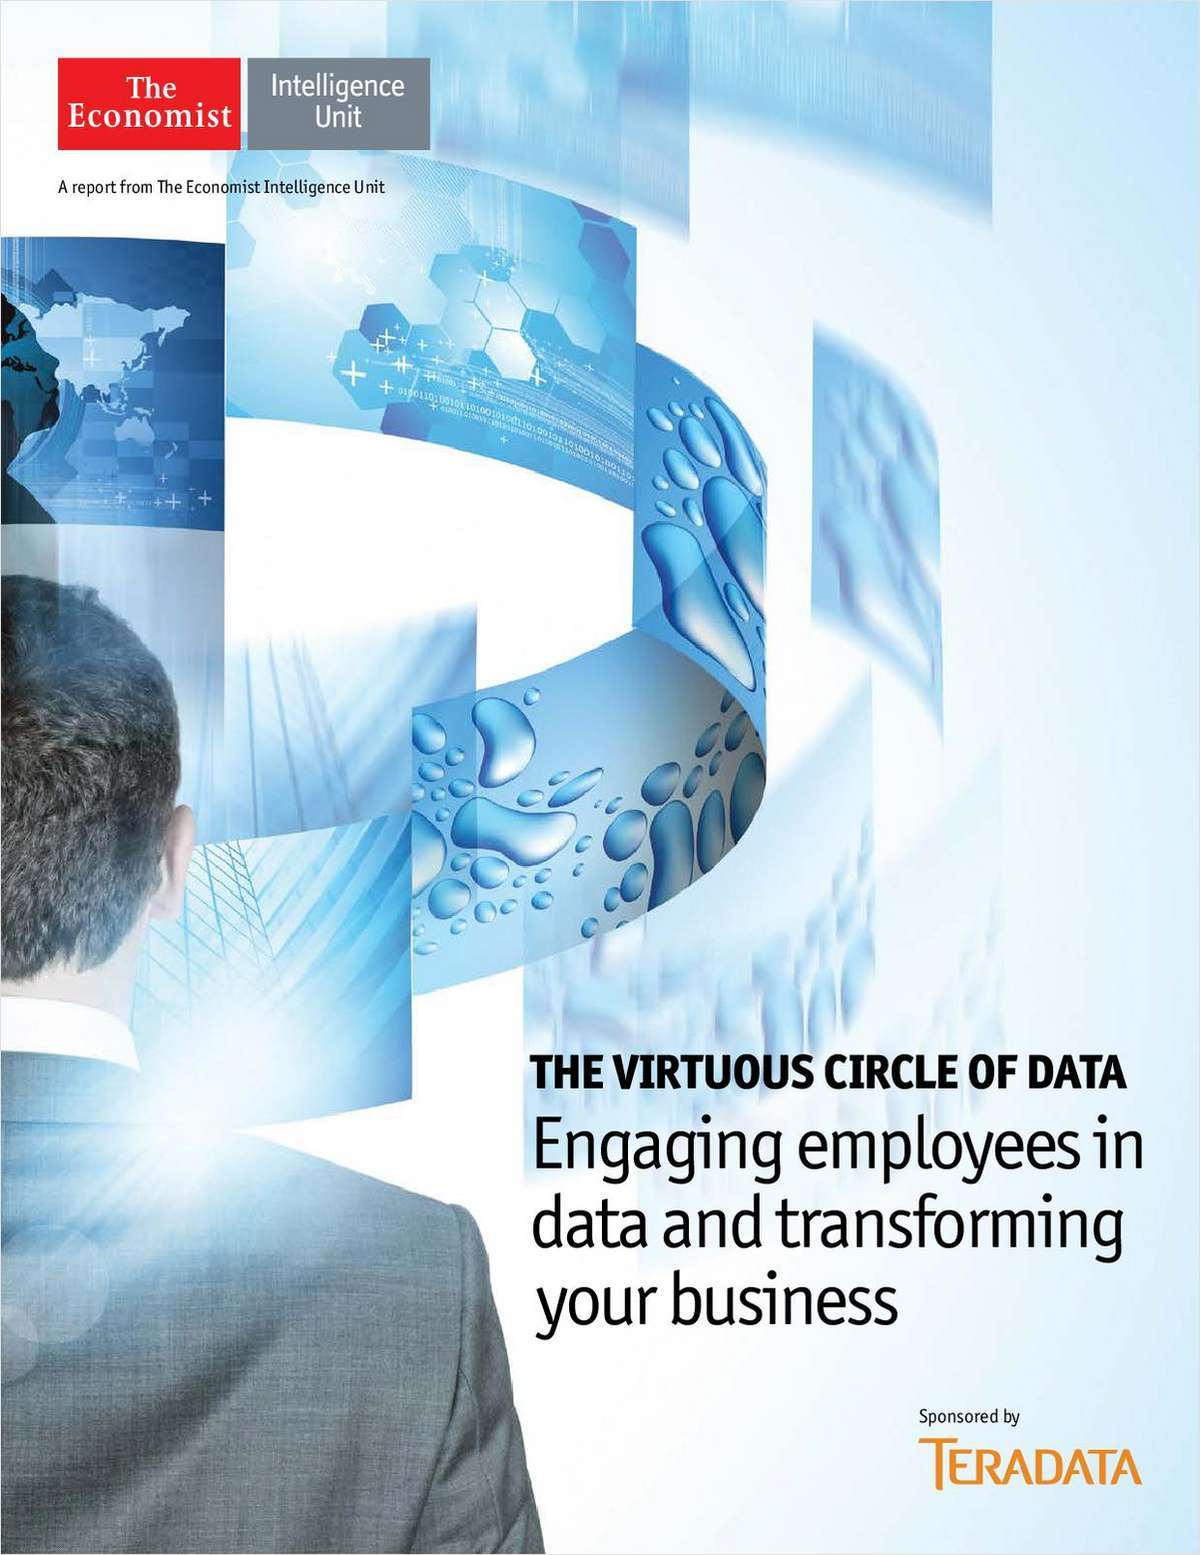 EIU Research Report: The Virtuous Circle of Data